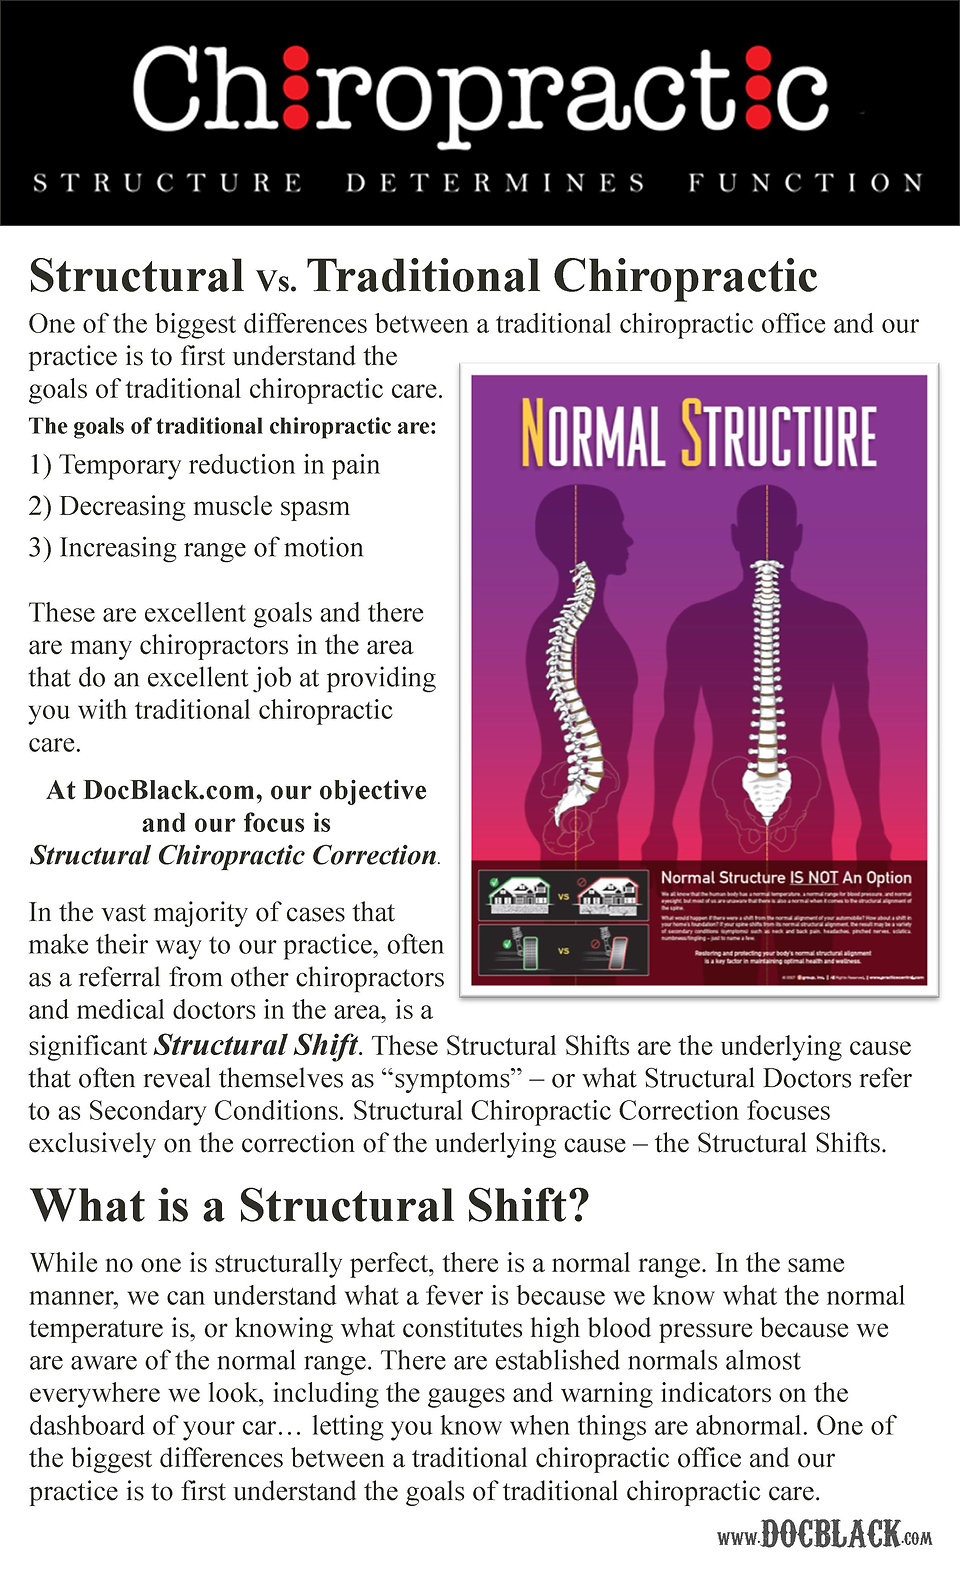 What is Chiropractic at DocBlack.com